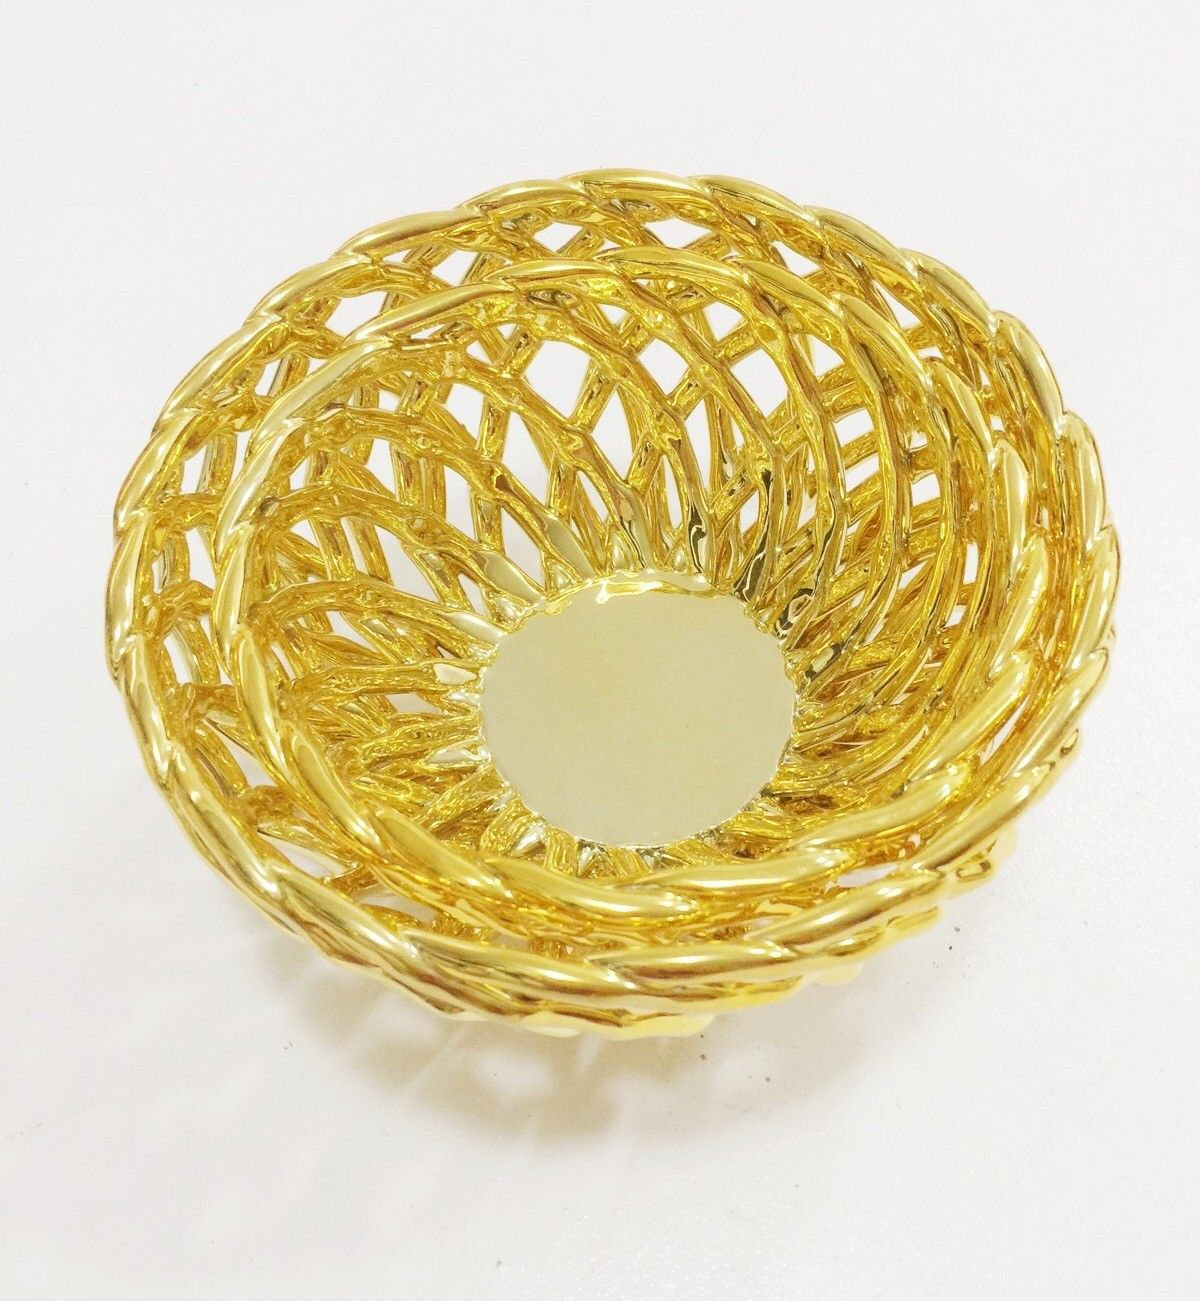 Set of 2 Nesting Gold Bread / Decorative Baskets - Home Decor ...